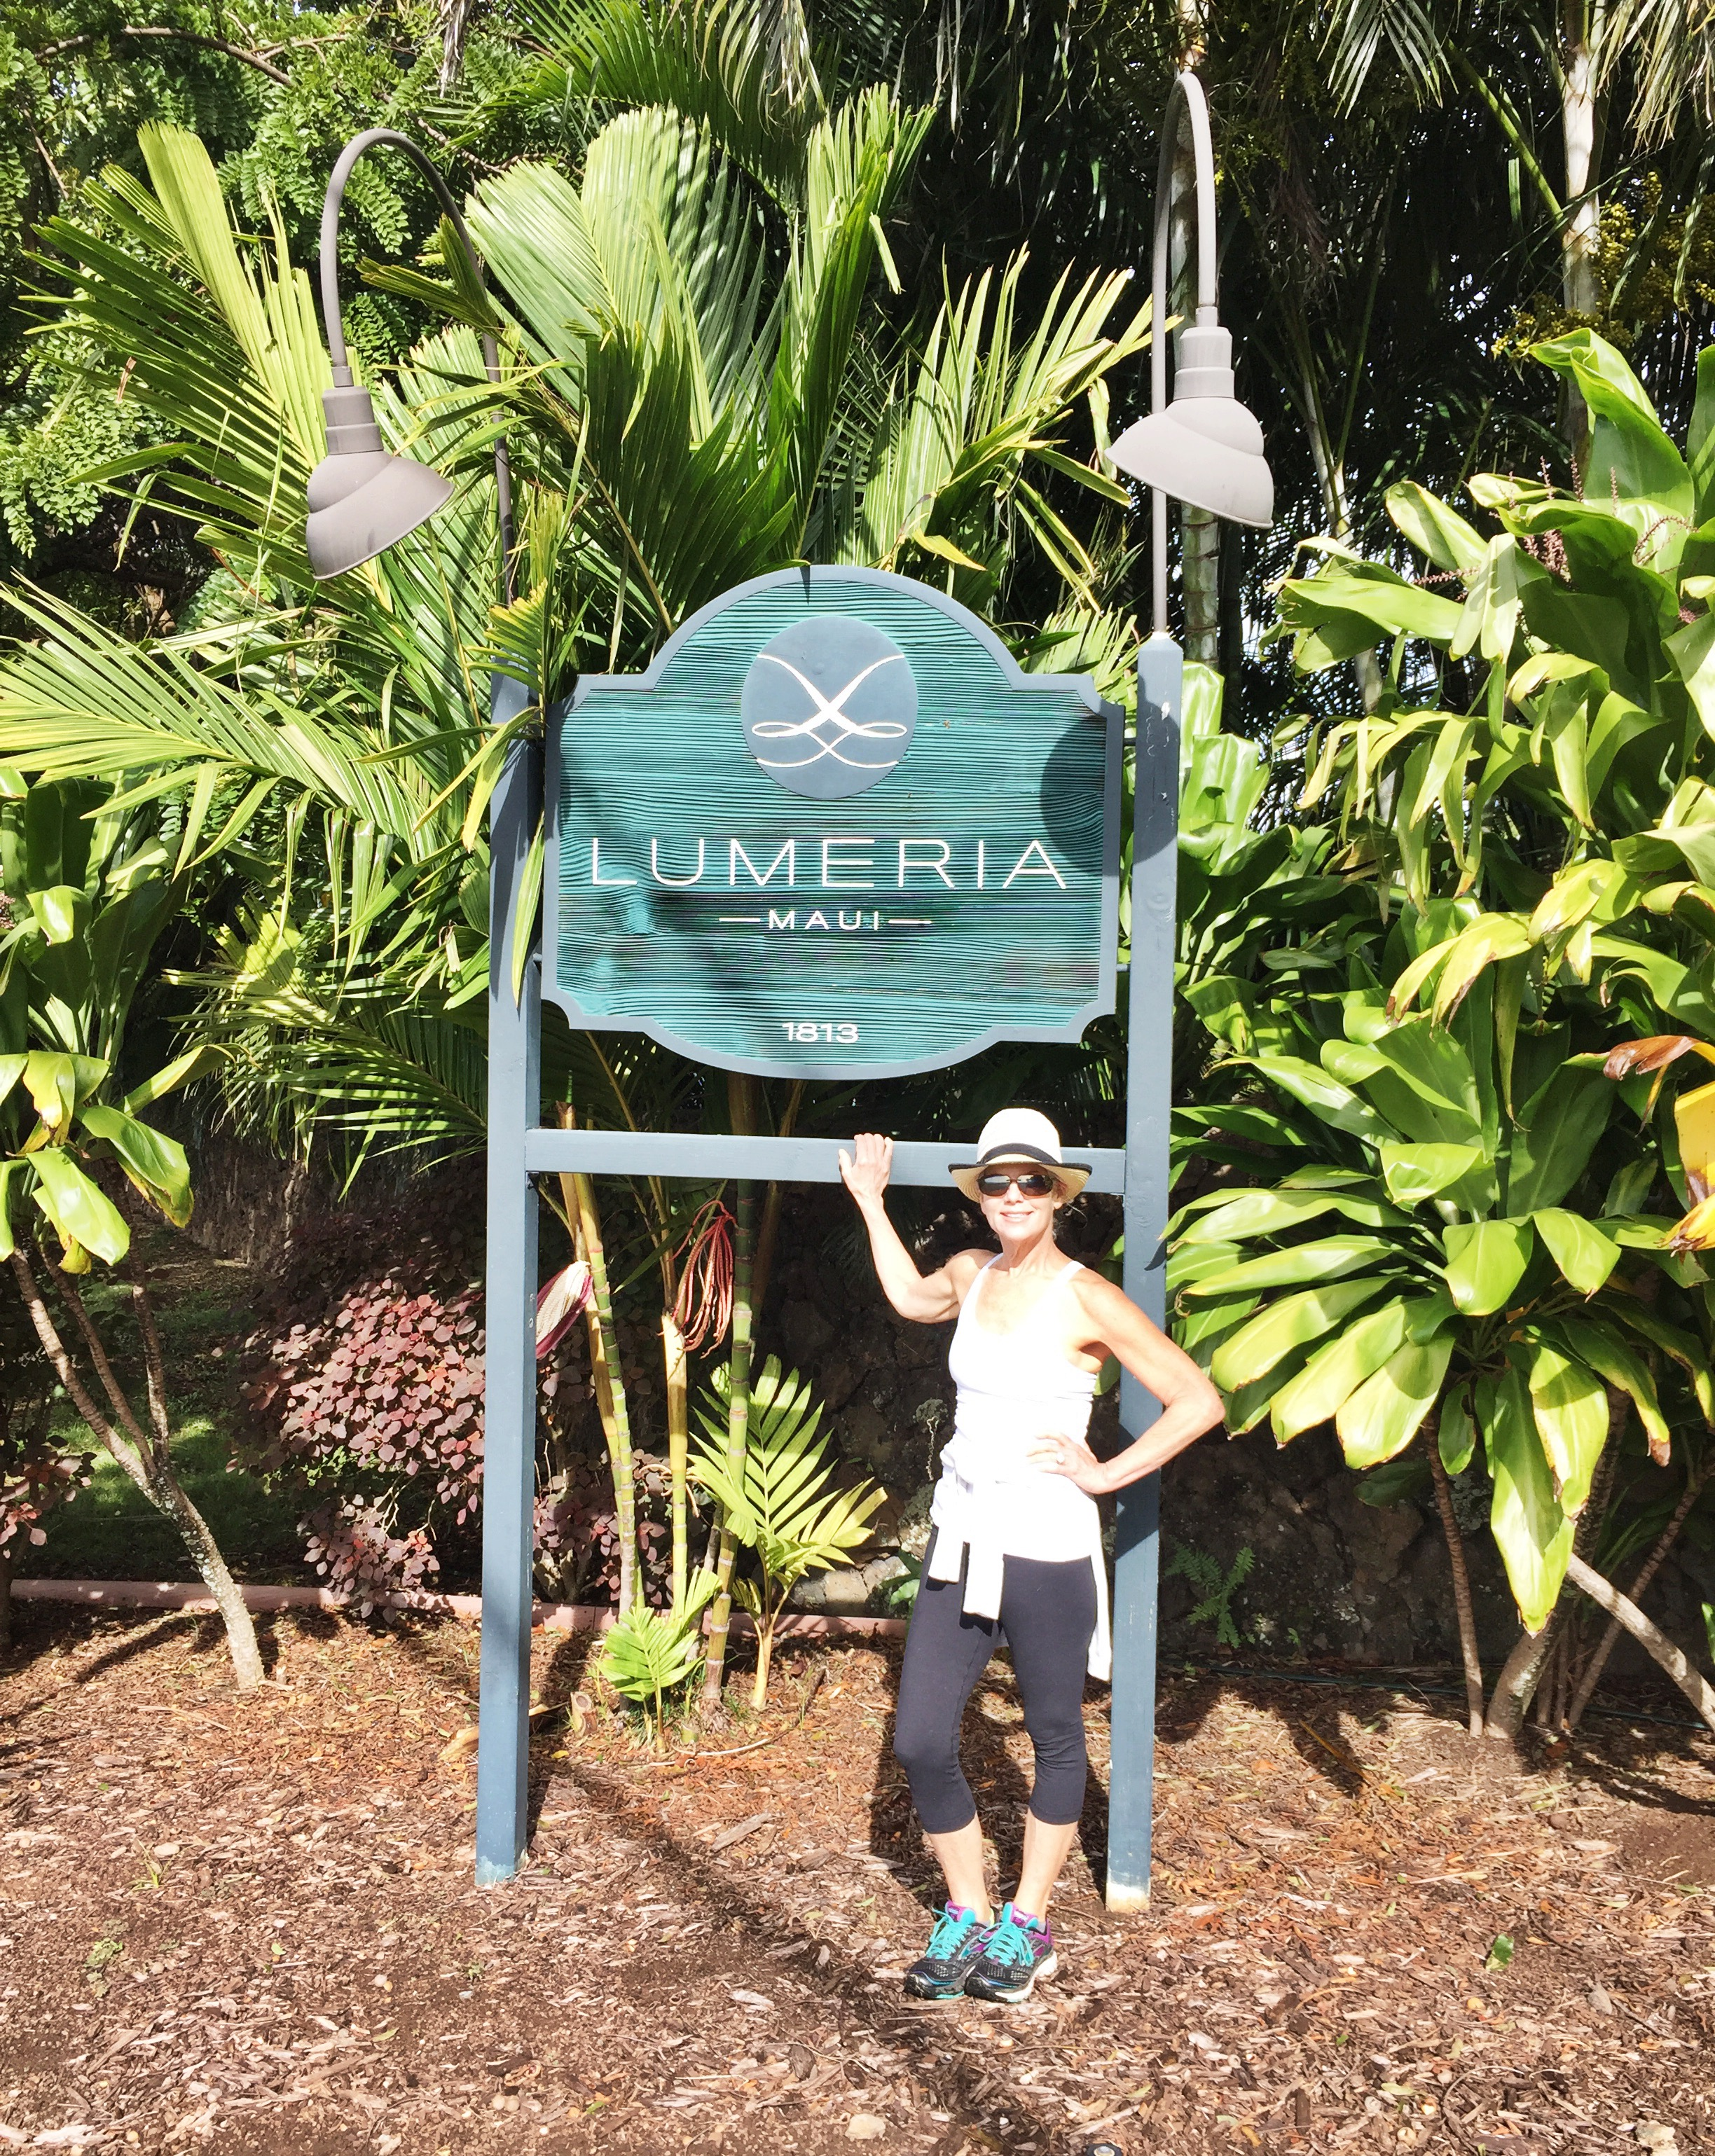 lumeria sign